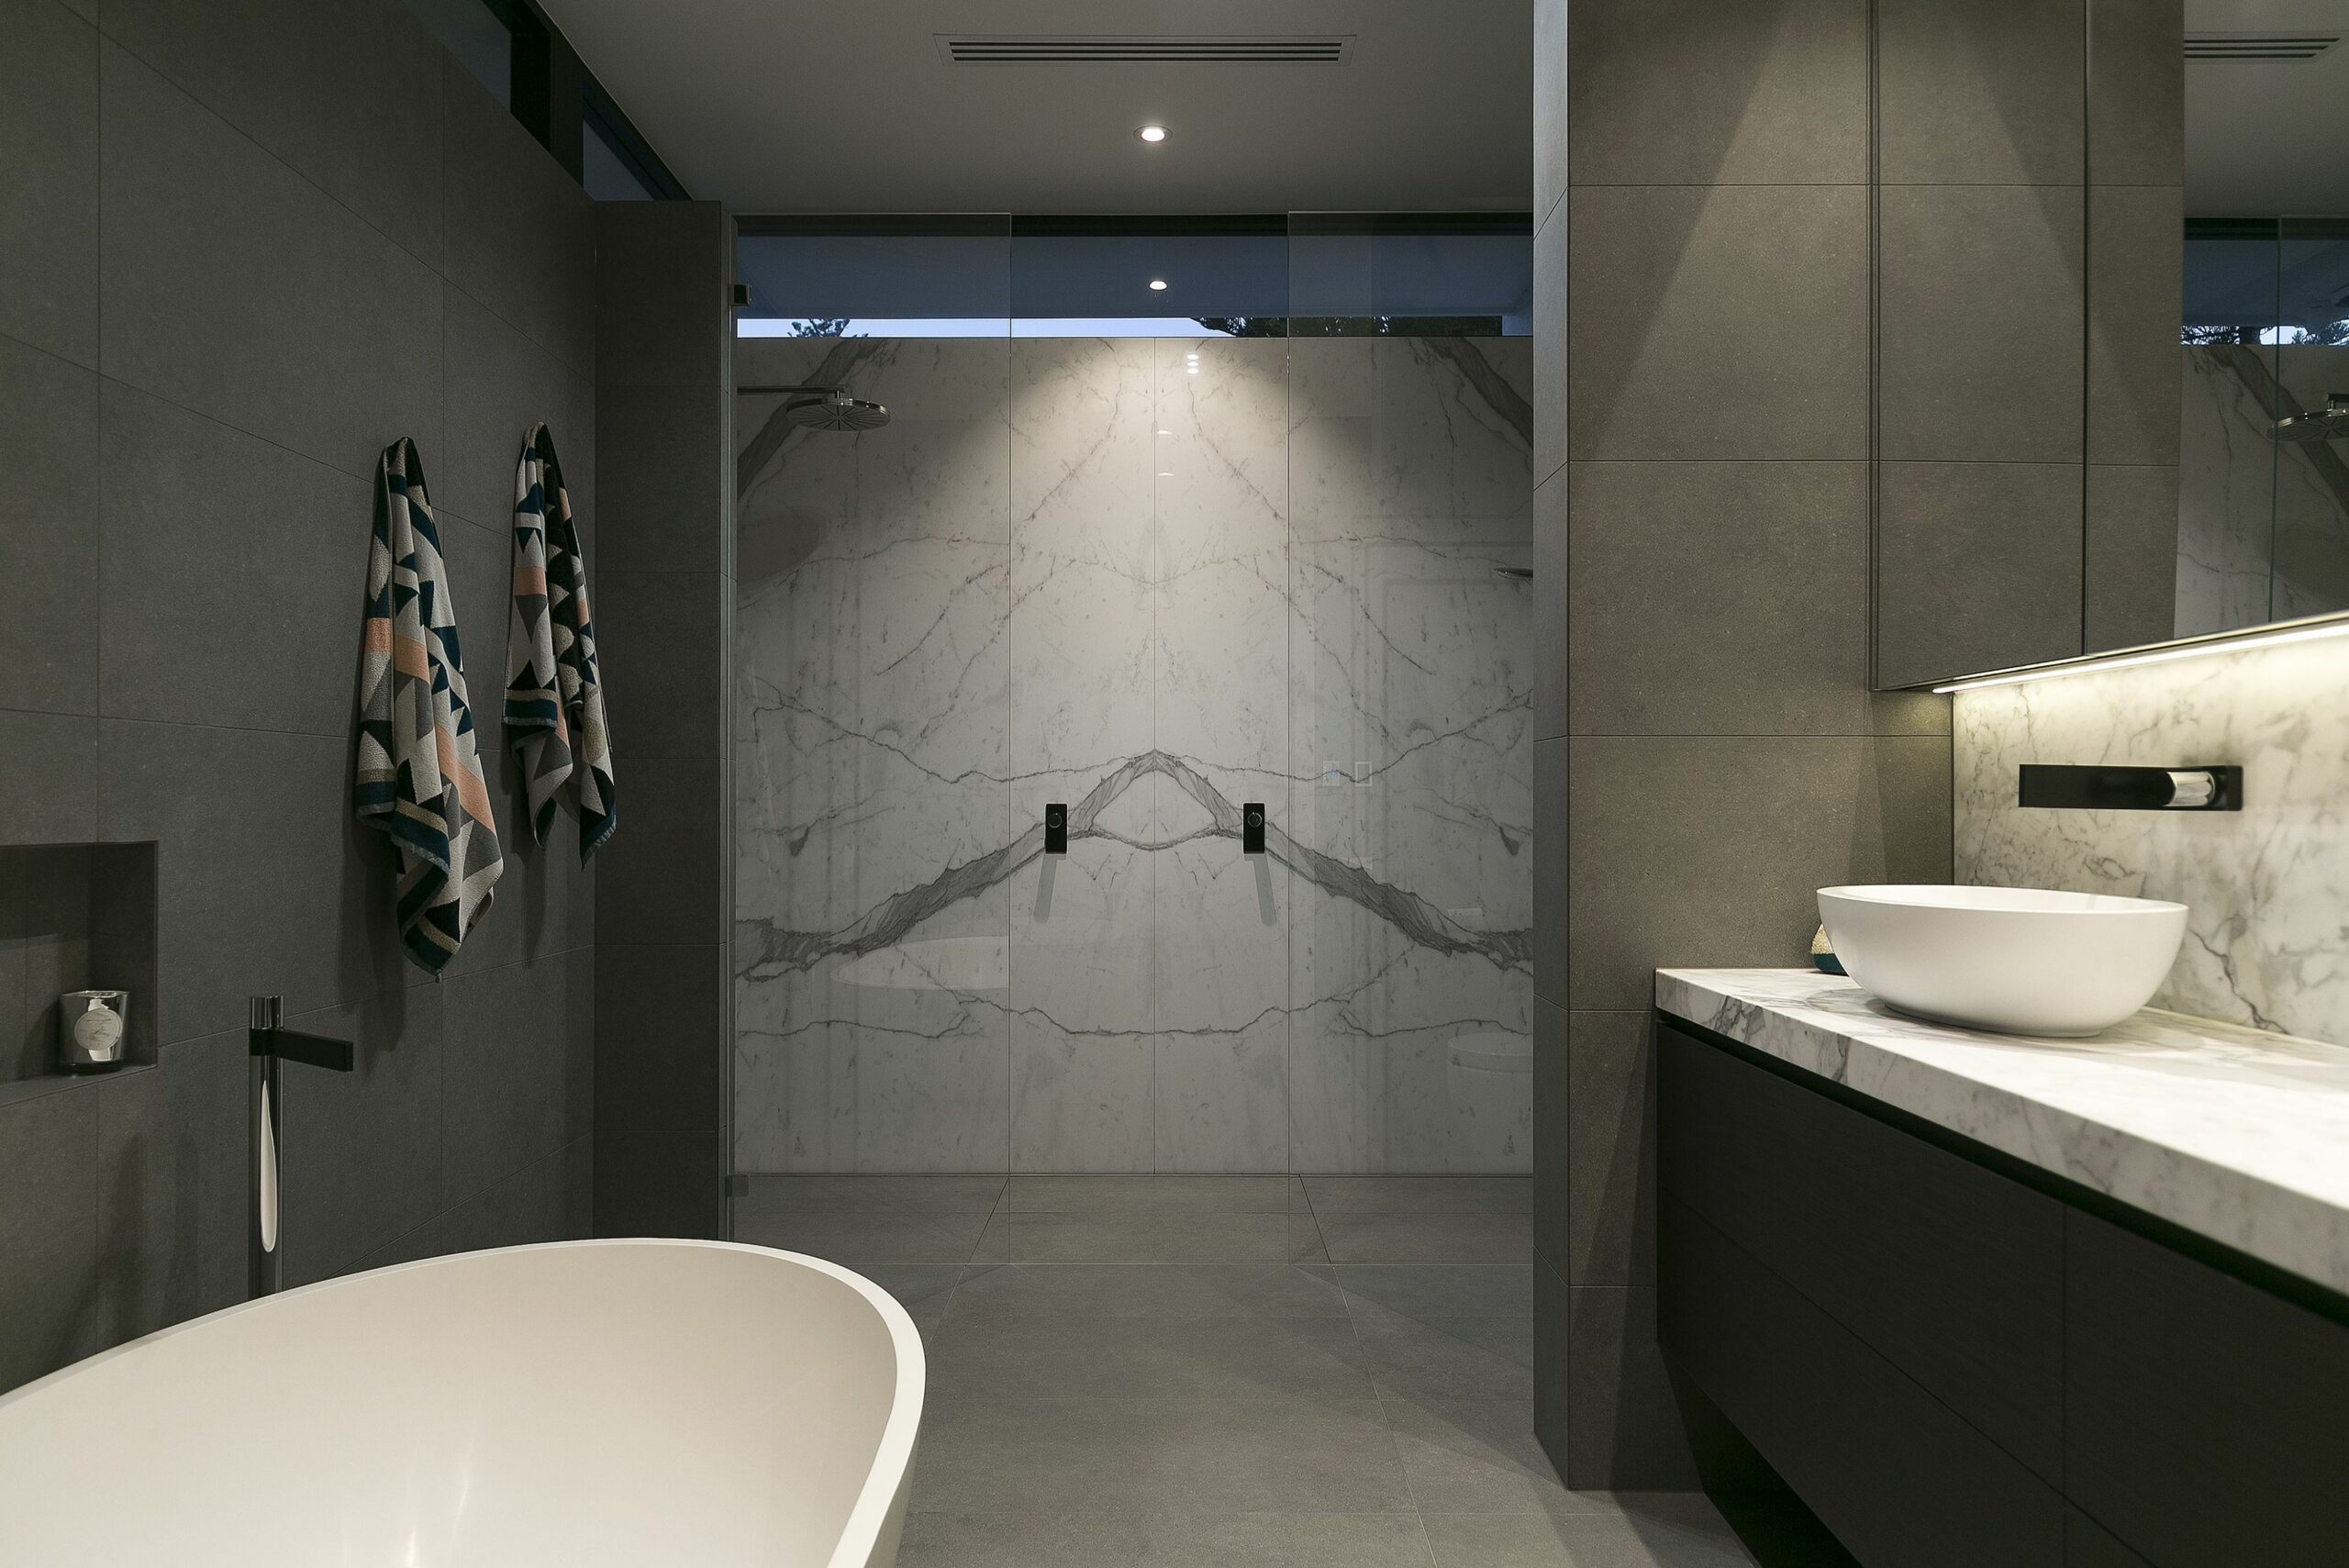 Bathroom Tiles & Stone - Italia Ceramics Adelaide | Bathroom ..